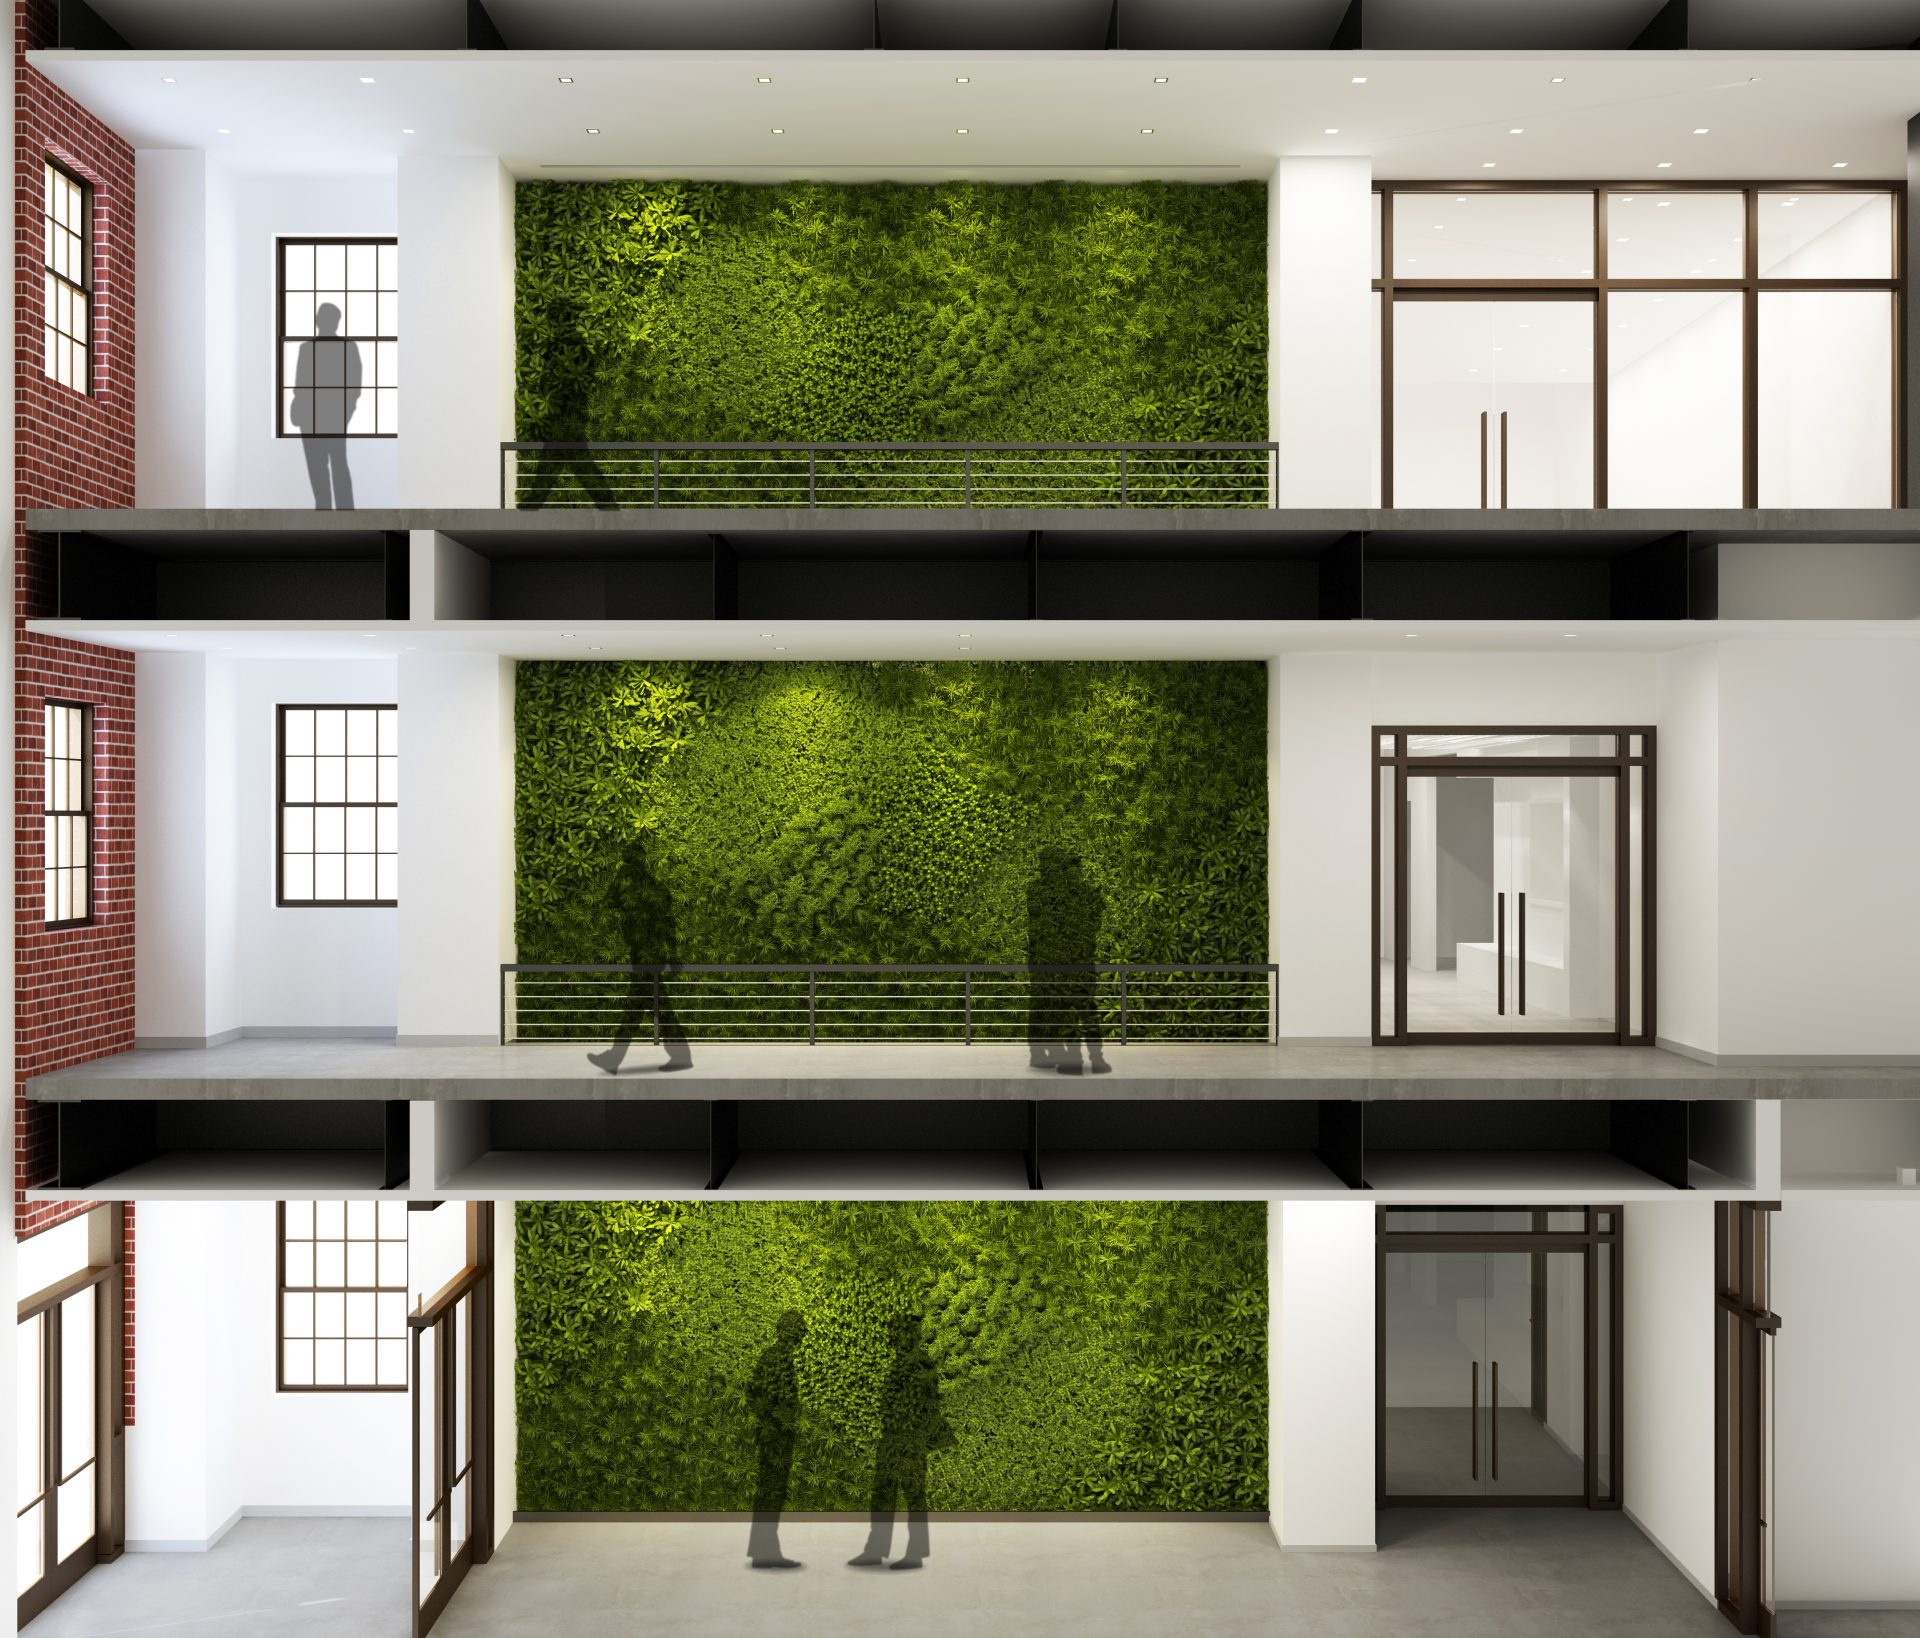 Rendering of the preserved living green wall in the three-story atrium at the Dolan Family Science Center